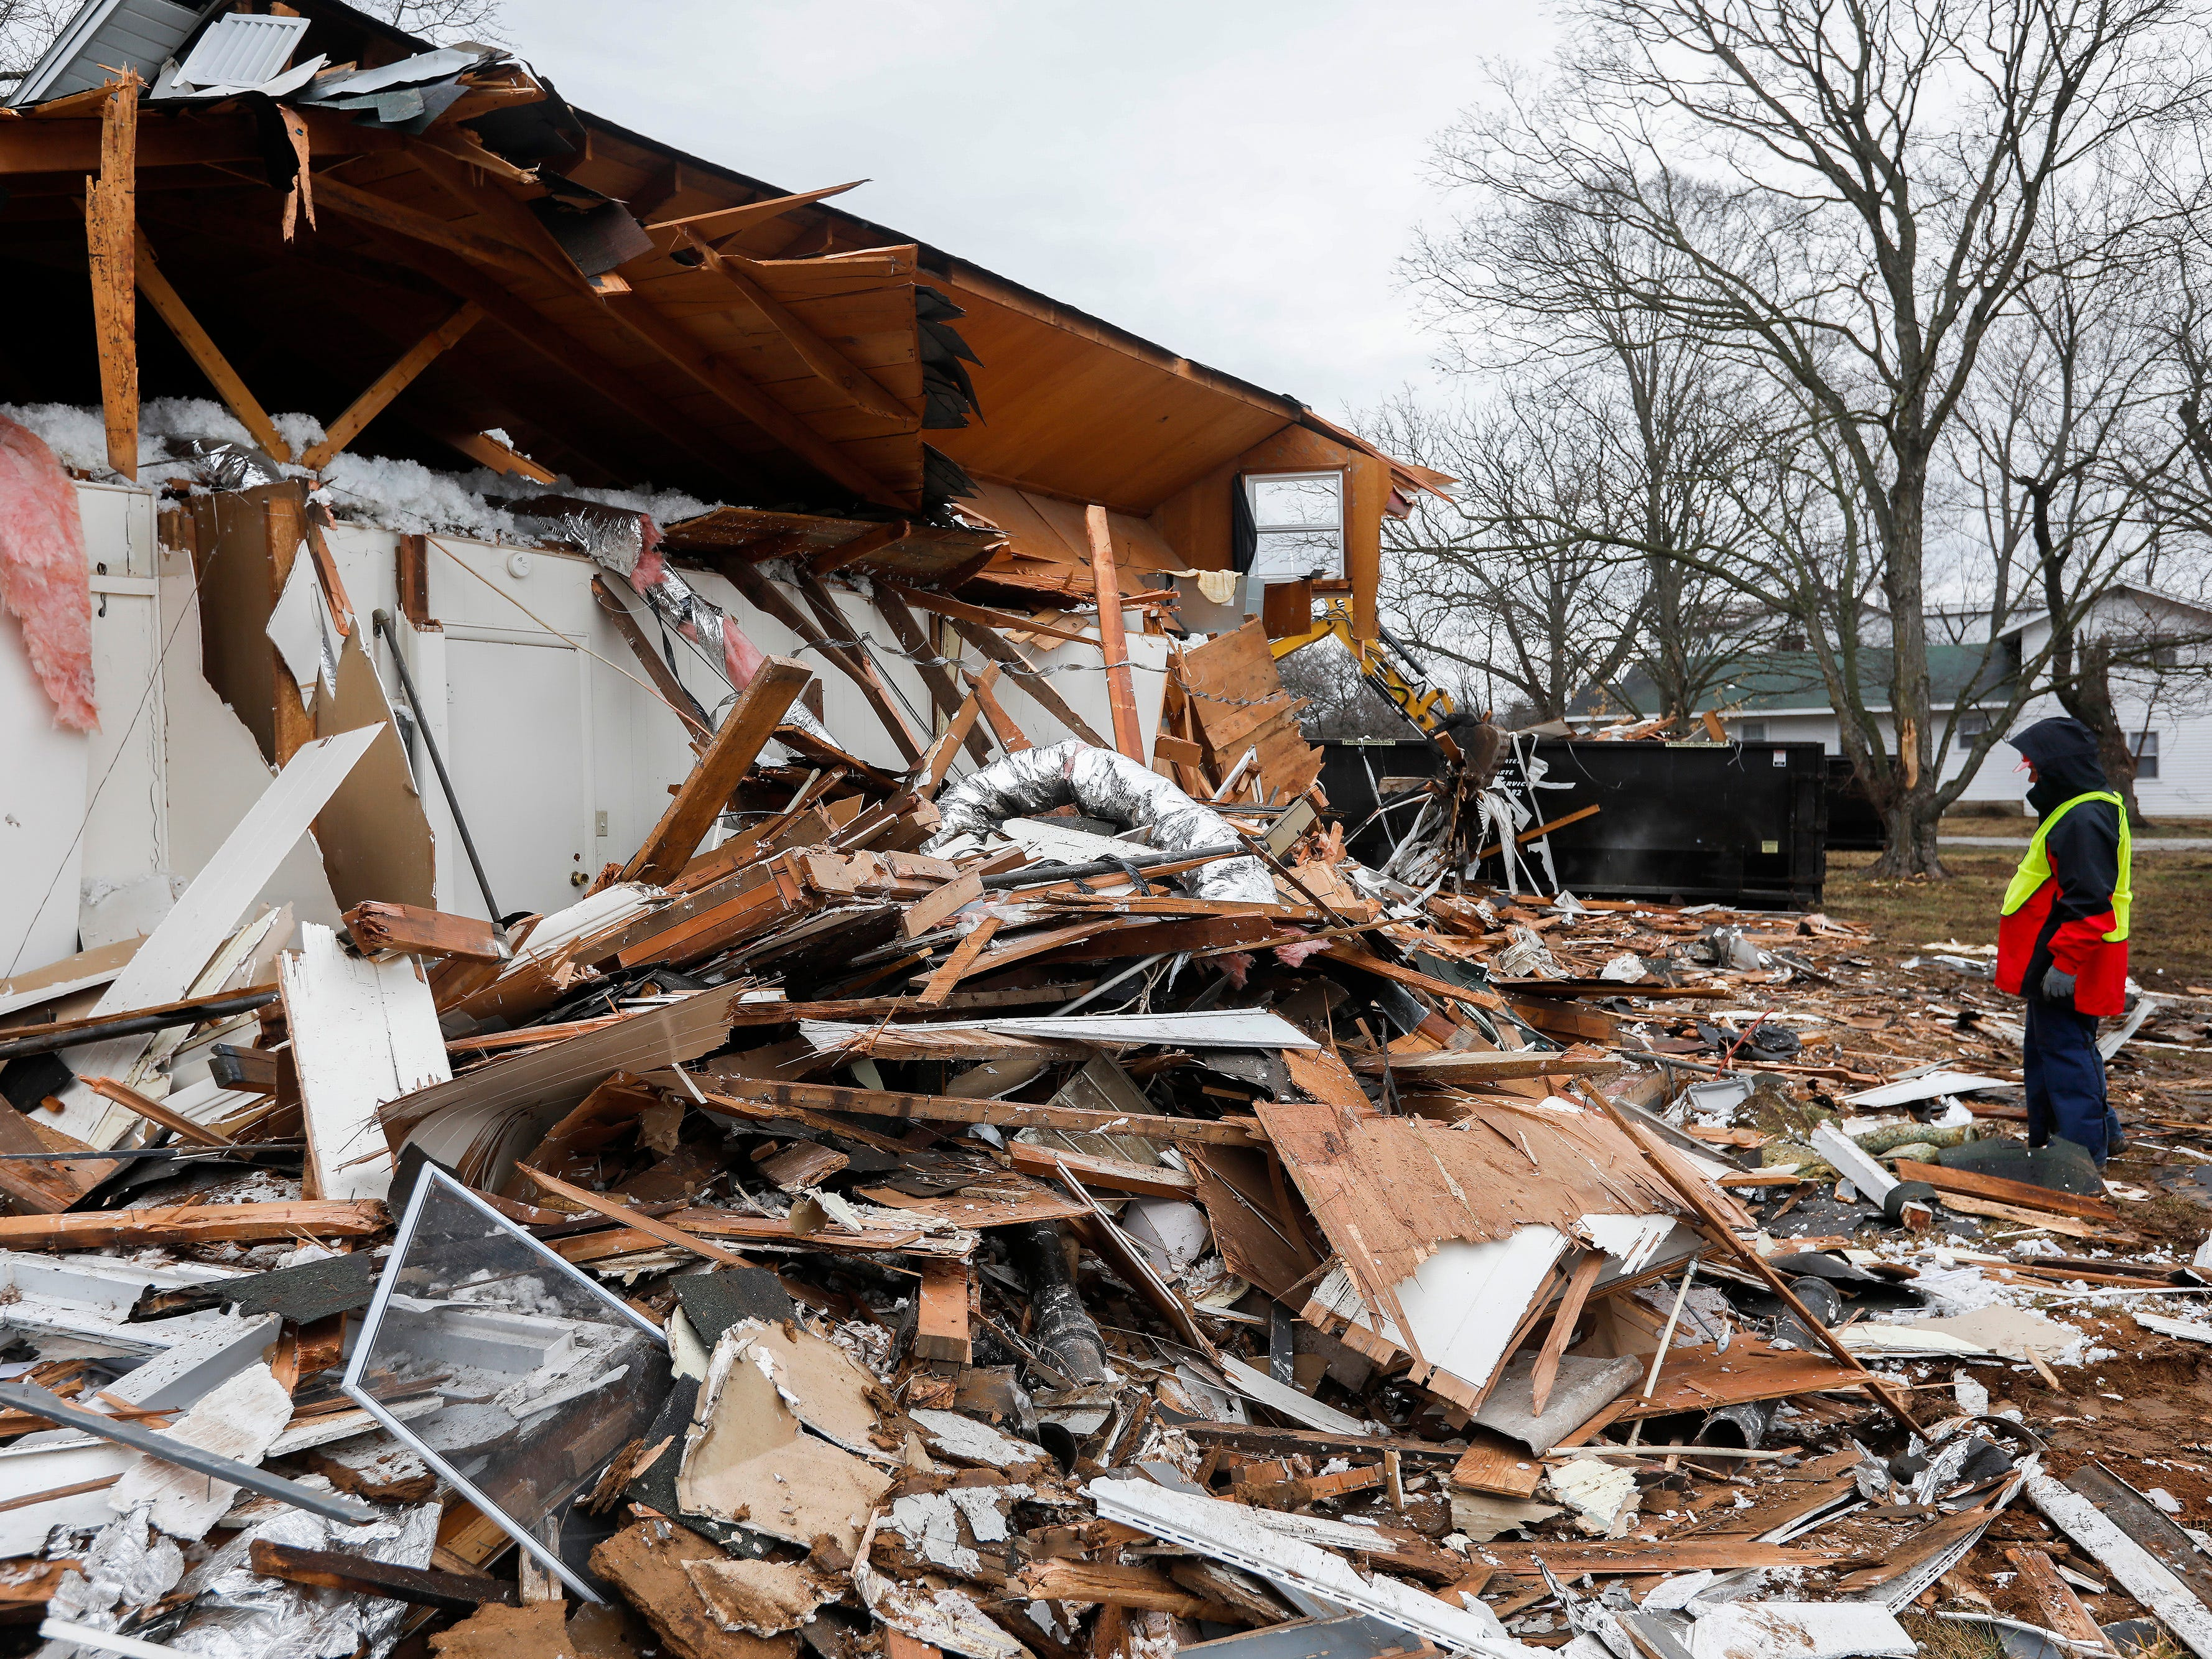 Jim Aubry, a volunteer with Convoy of Hope, watches as a home at the Ozark Mill Finley Farms development is demolished on Tuesday, March 12, 2019. Members of the organization were gaining experience with demolition for when a real disaster strikes.